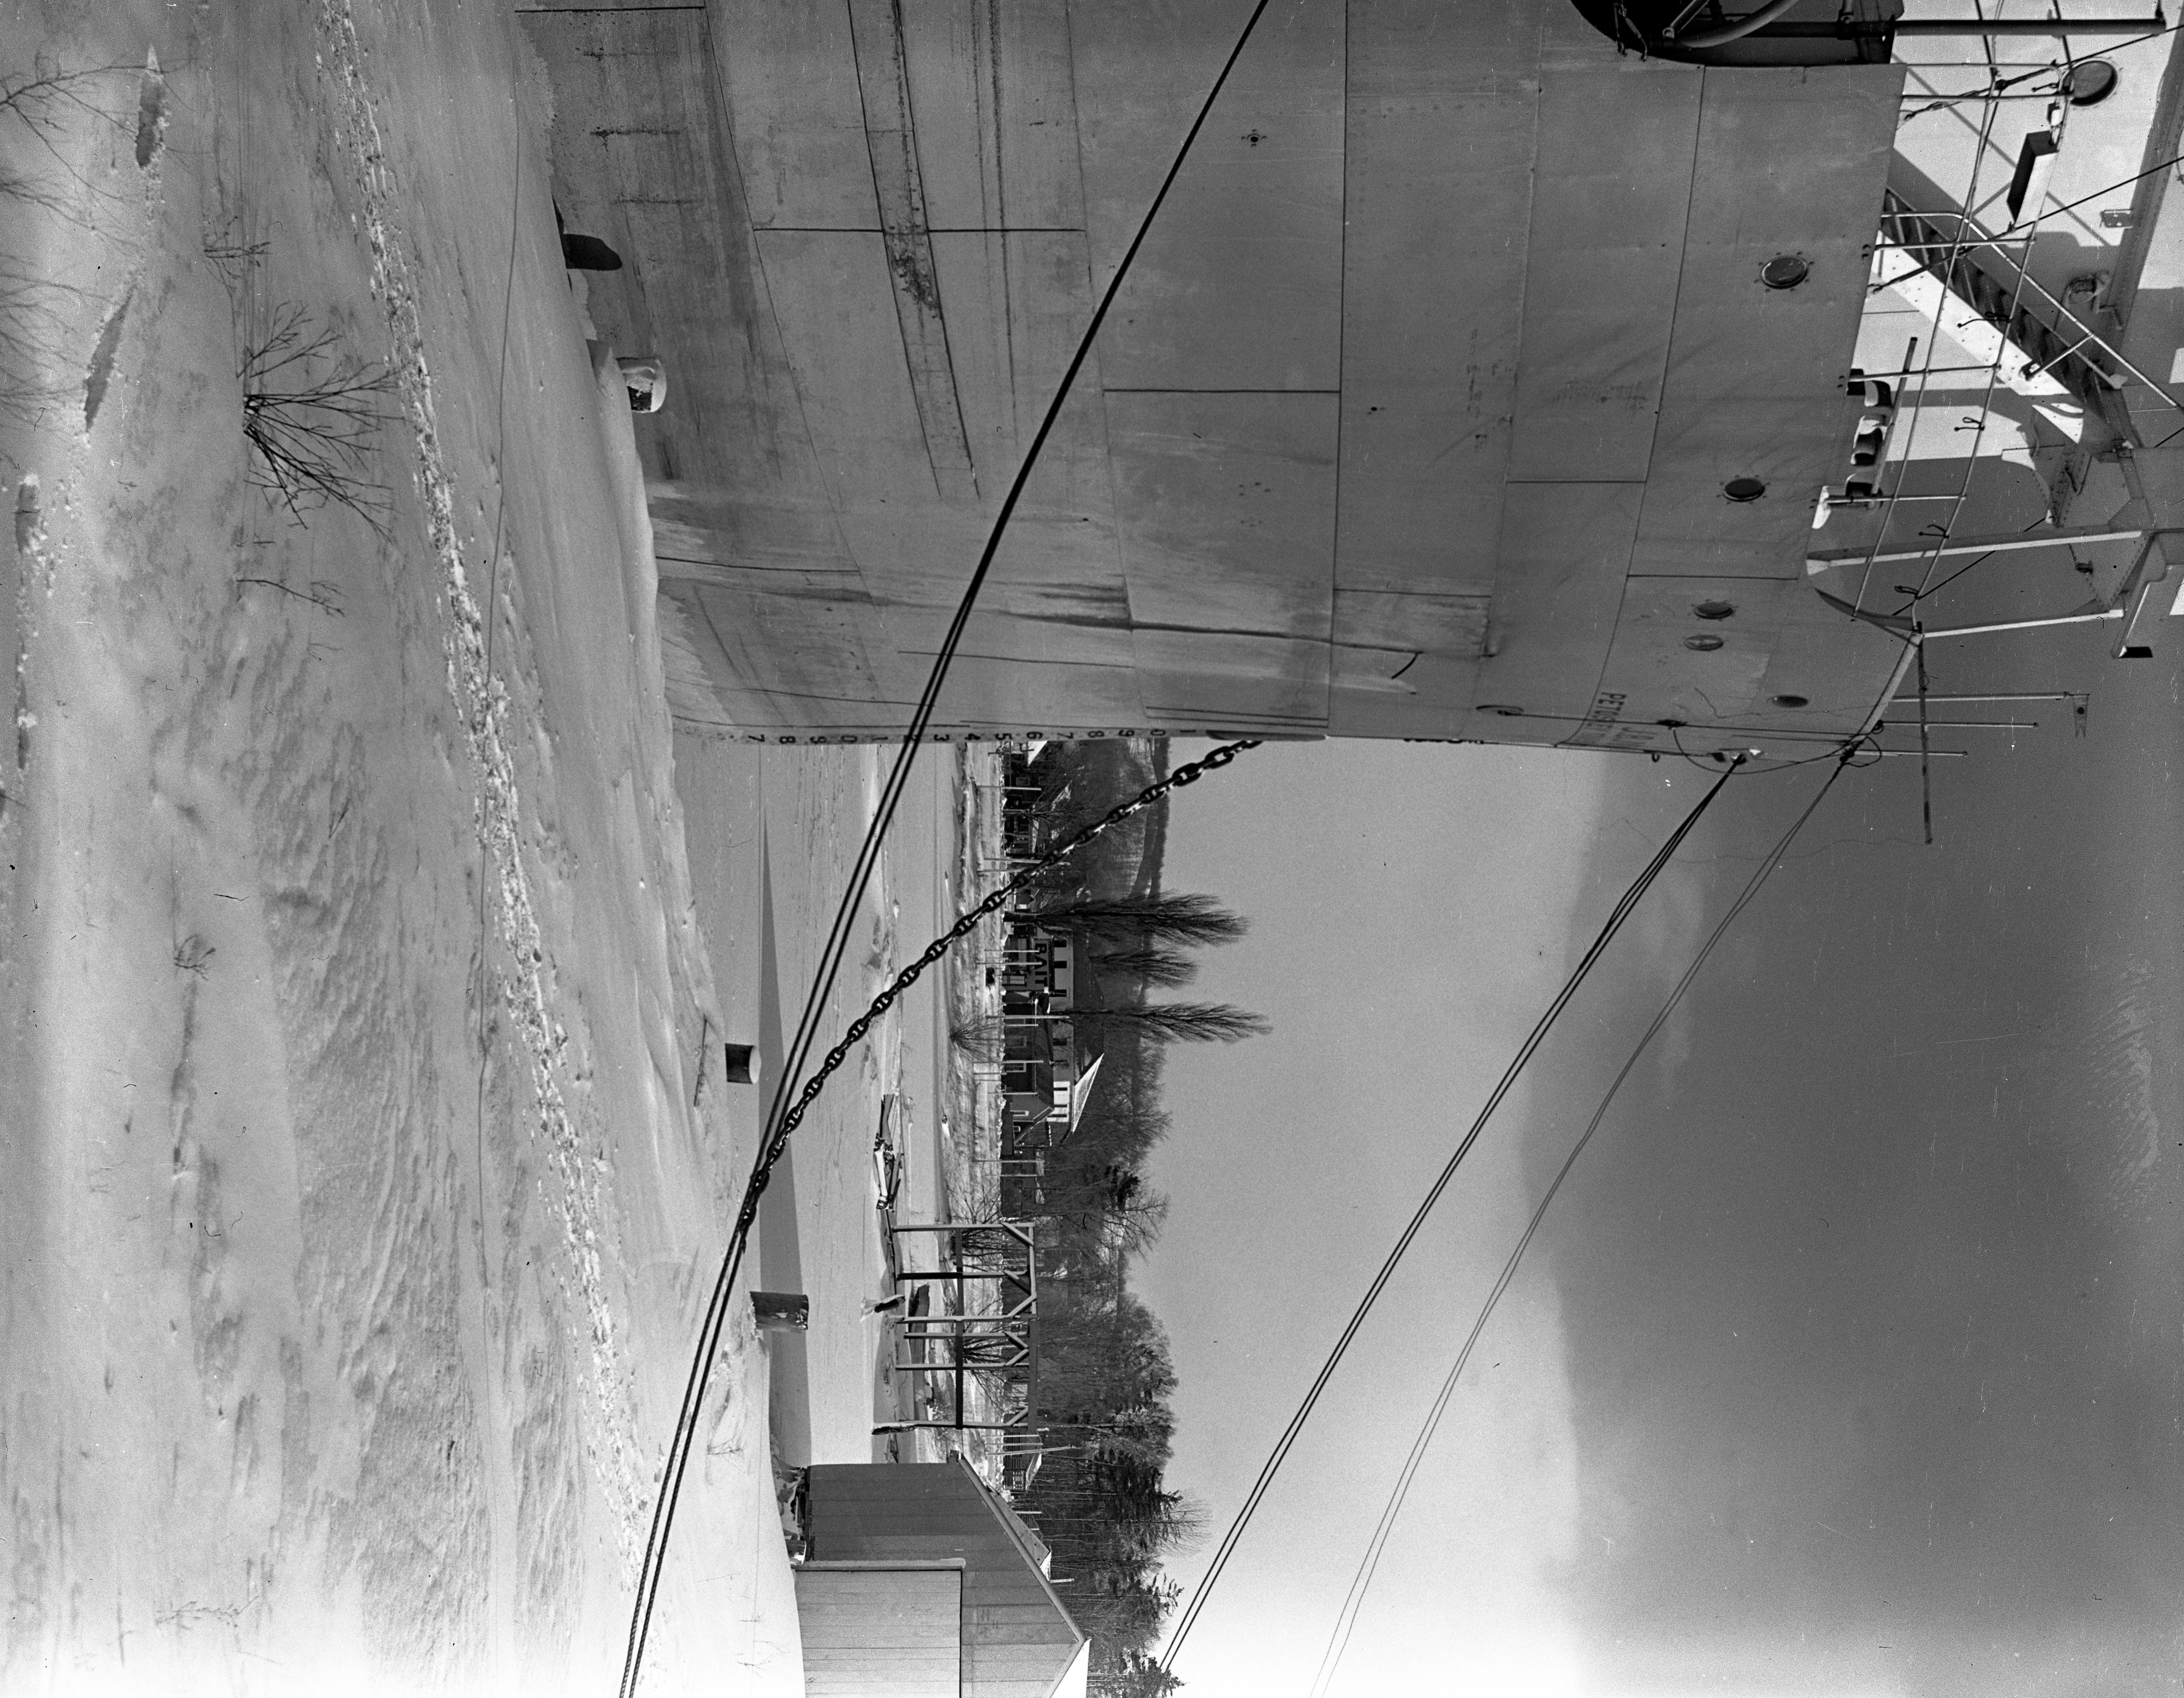 J.B. John Freighter In Frozen Lake Charlevoix, January 1940 image